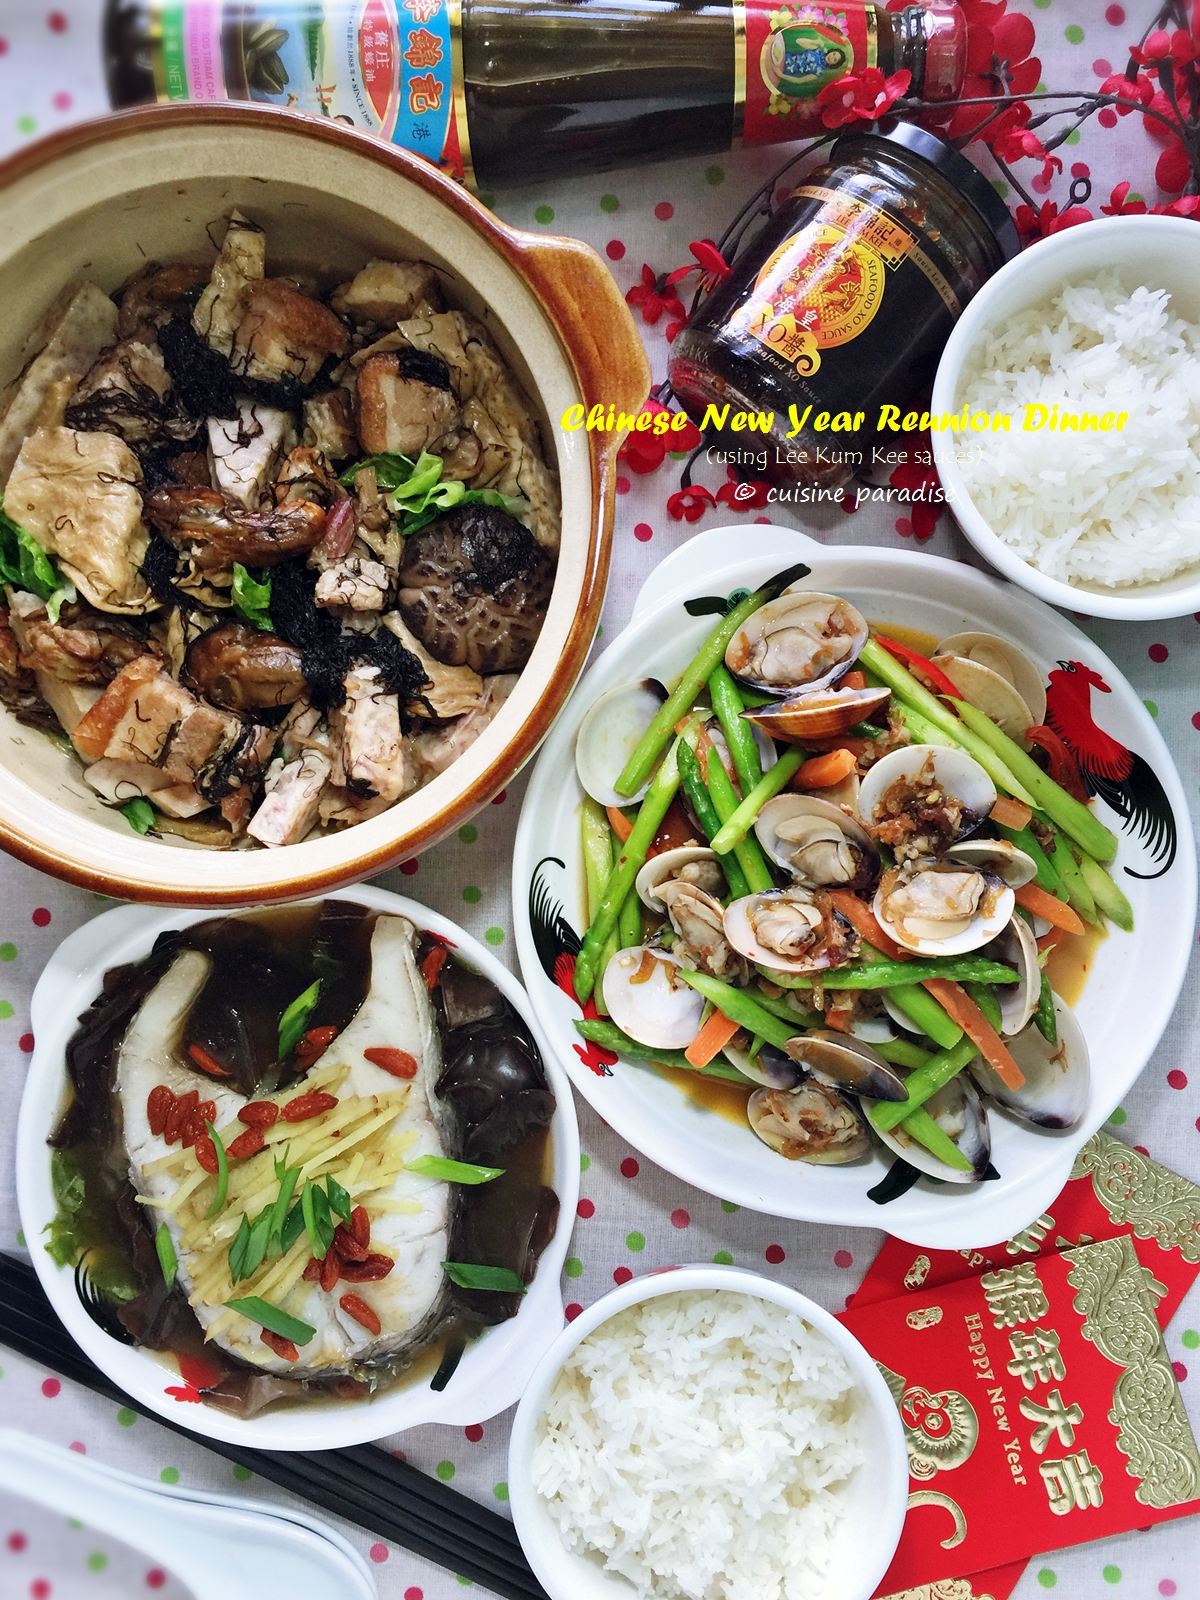 Cuisine paradise singapore food blog recipes reviews and unforgettable taste of reunion with lee kum kee plus giveaway forumfinder Choice Image